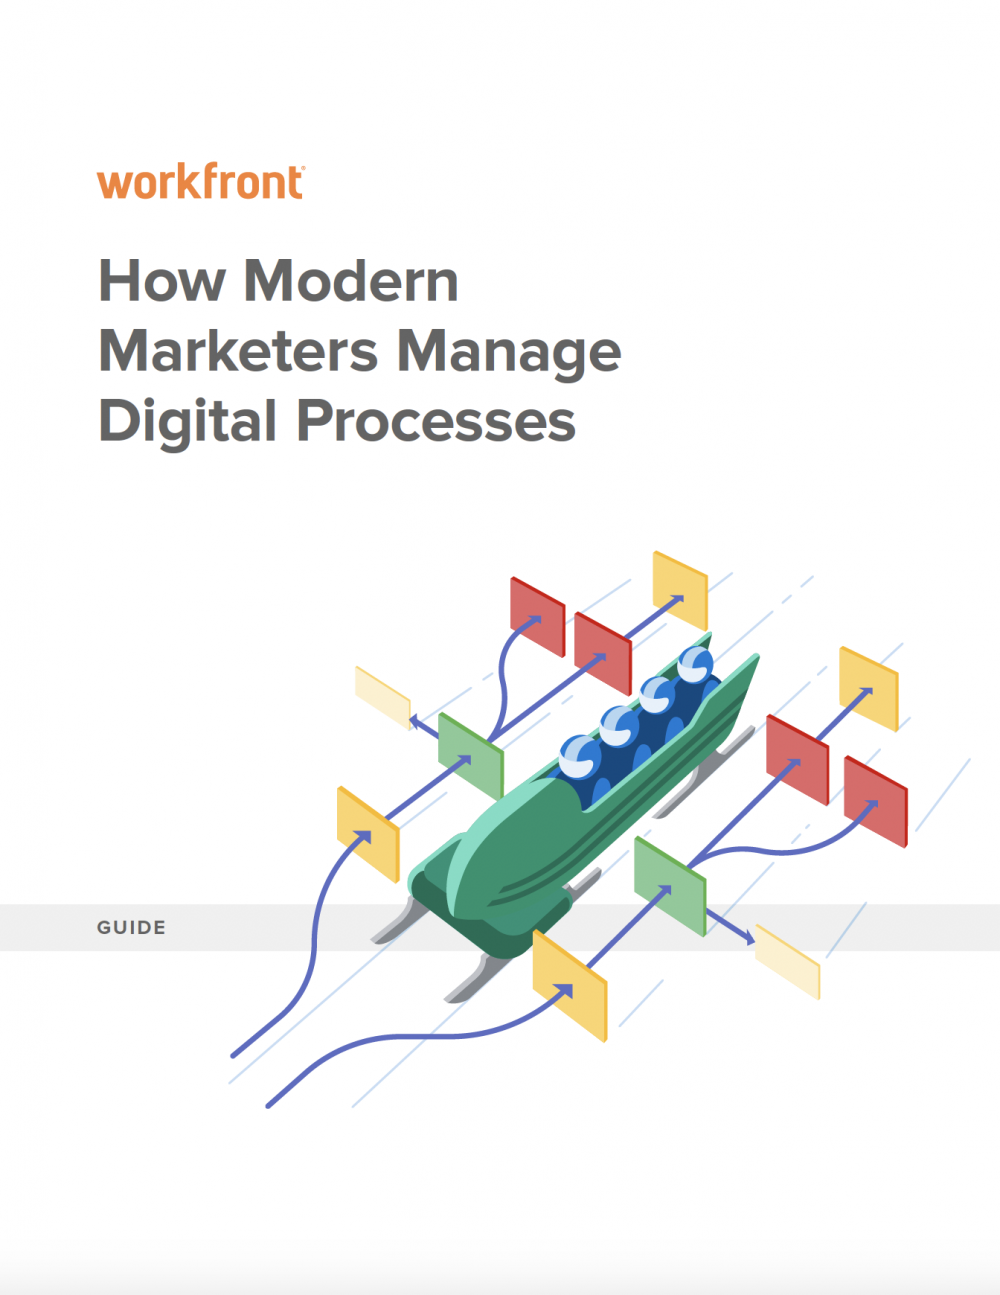 How Modern Marketers Manage Digital Processes